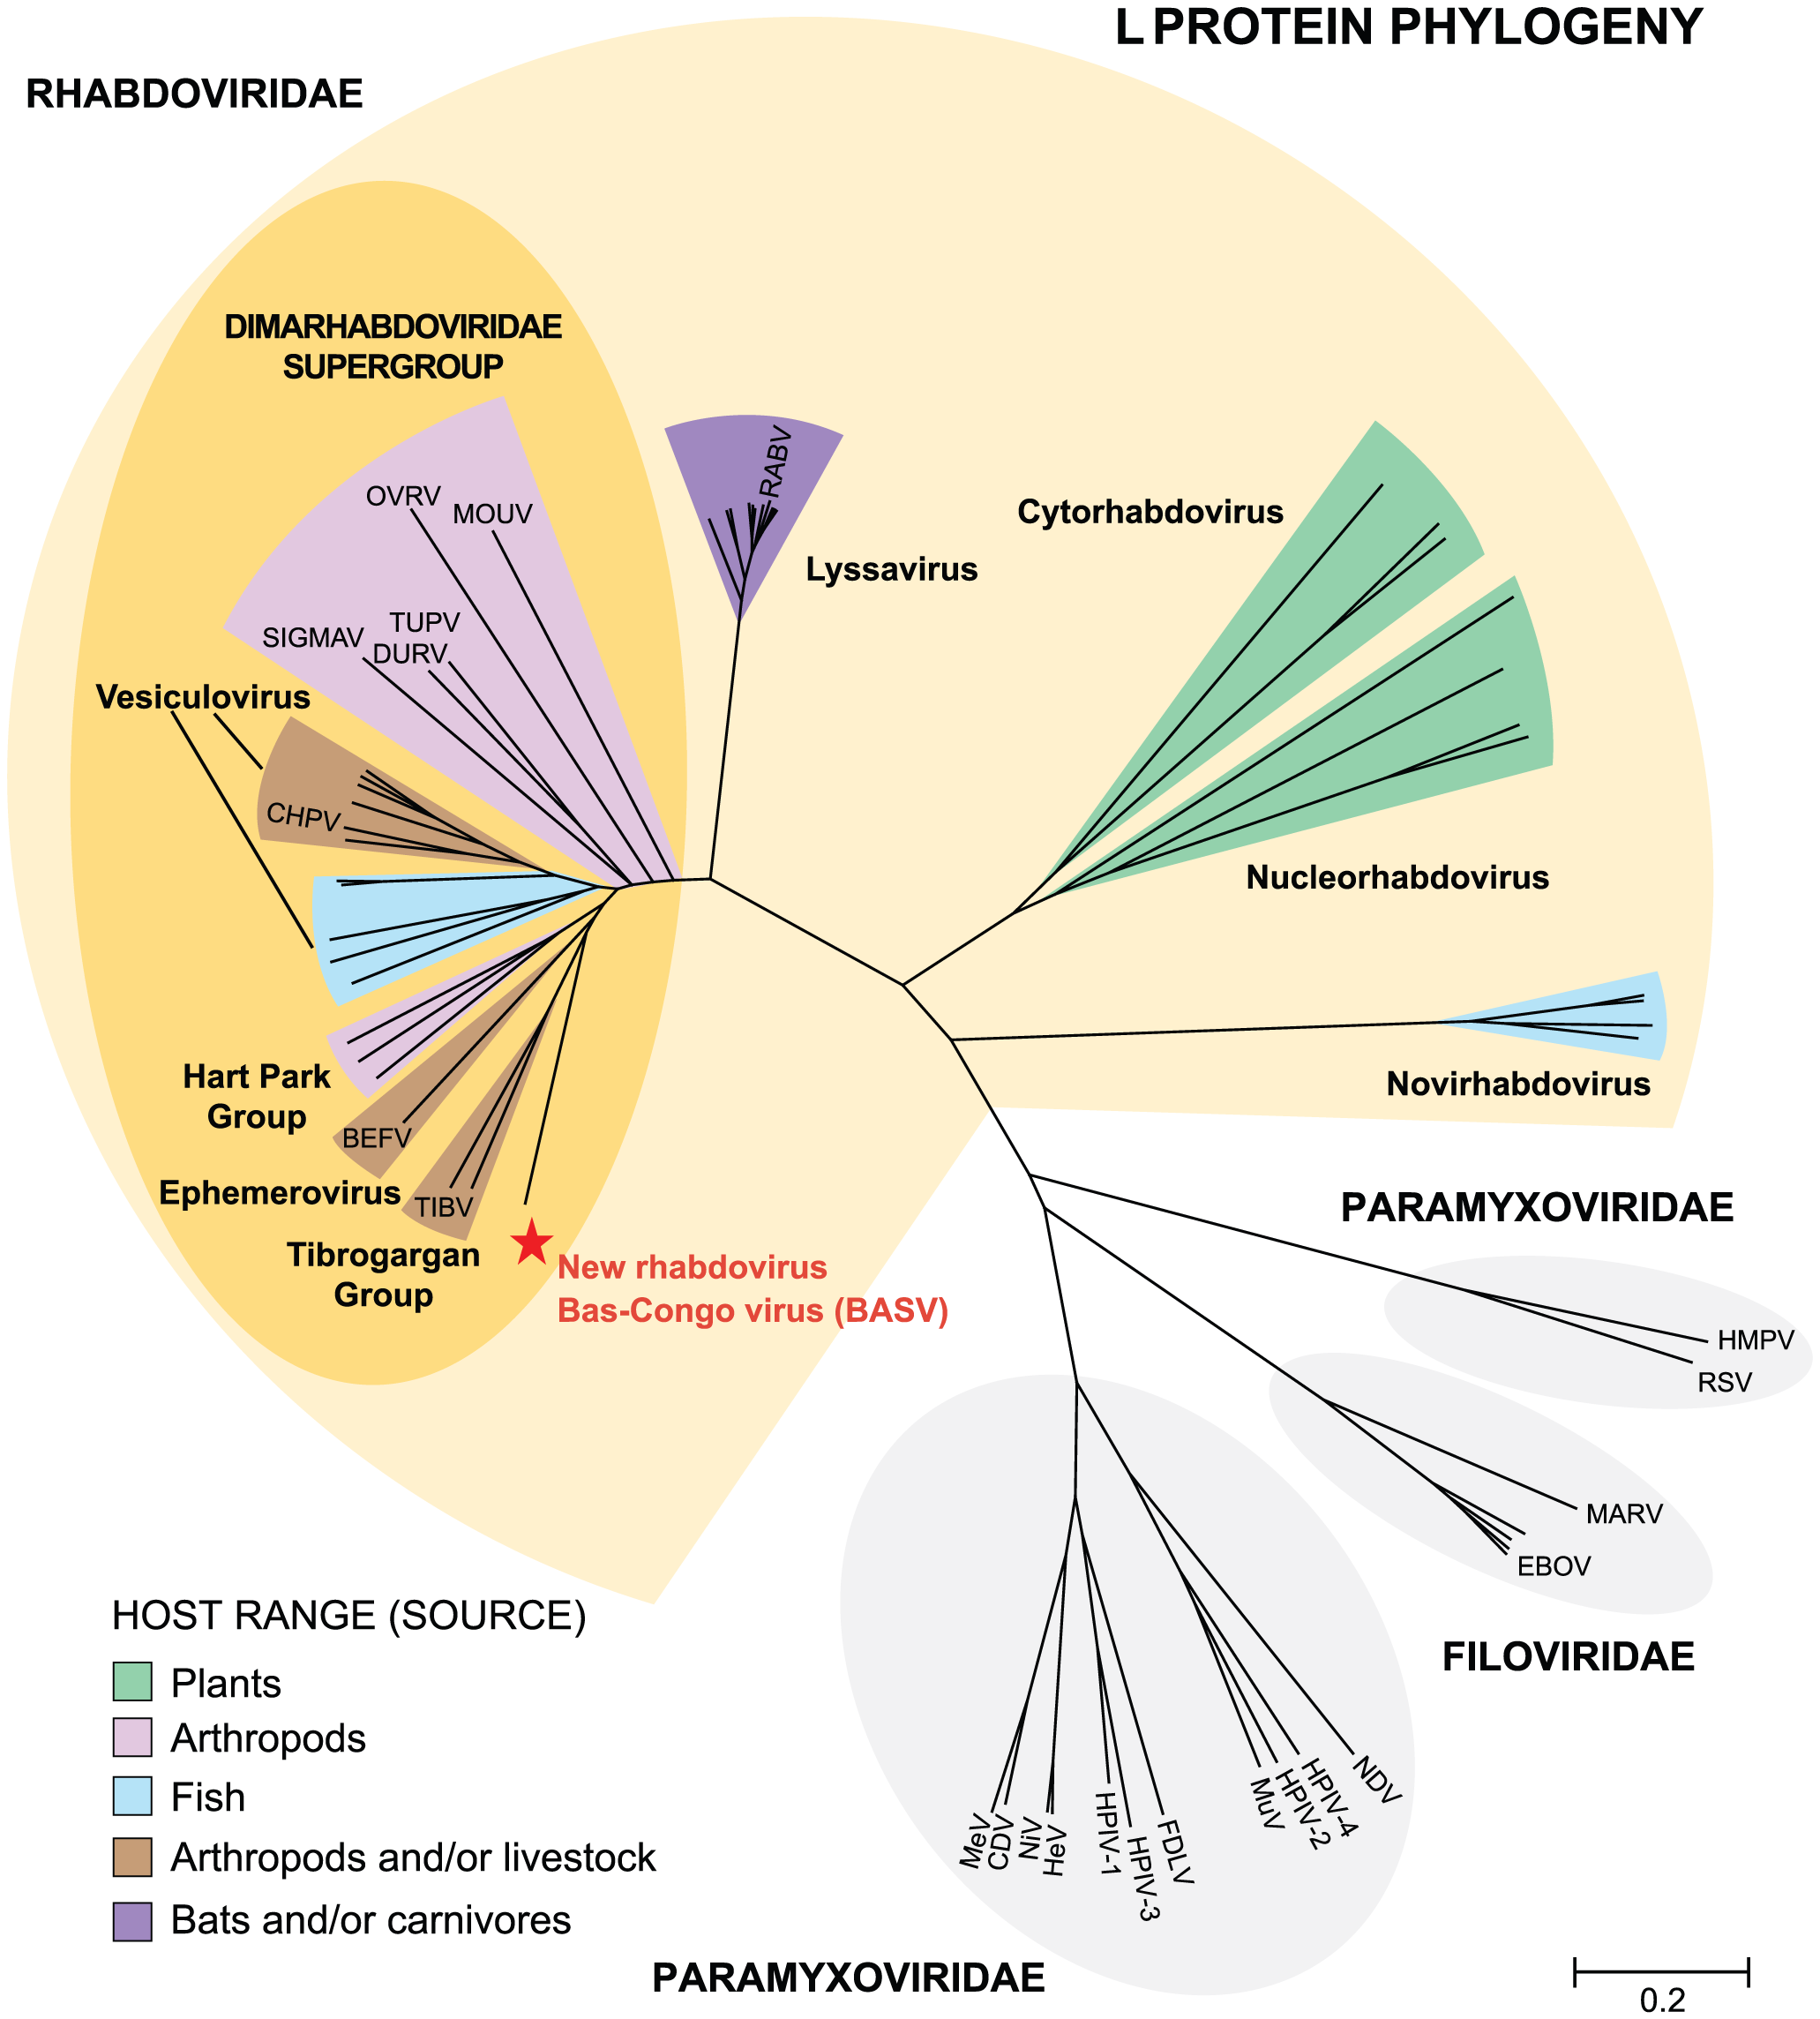 Phylogenetic analysis of the L proteins of BASV and other viruses in the order <i>Mononegavirales</i>.